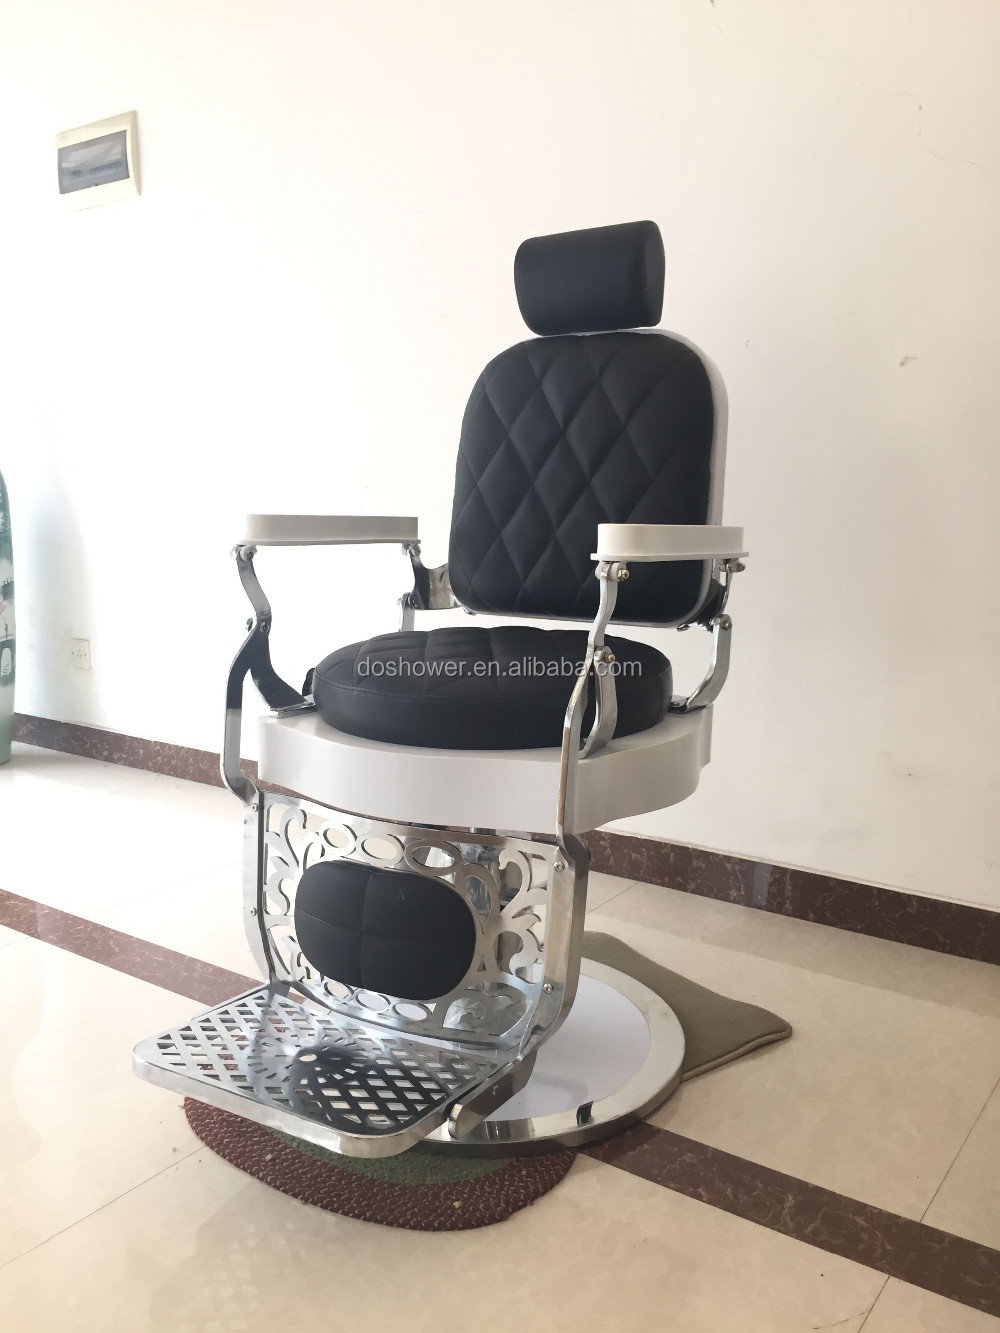 Antique barber chairs koken - Hydraulic Barber Chair Base Hydraulic Barber Chair Base Suppliers And Manufacturers At Alibaba Com